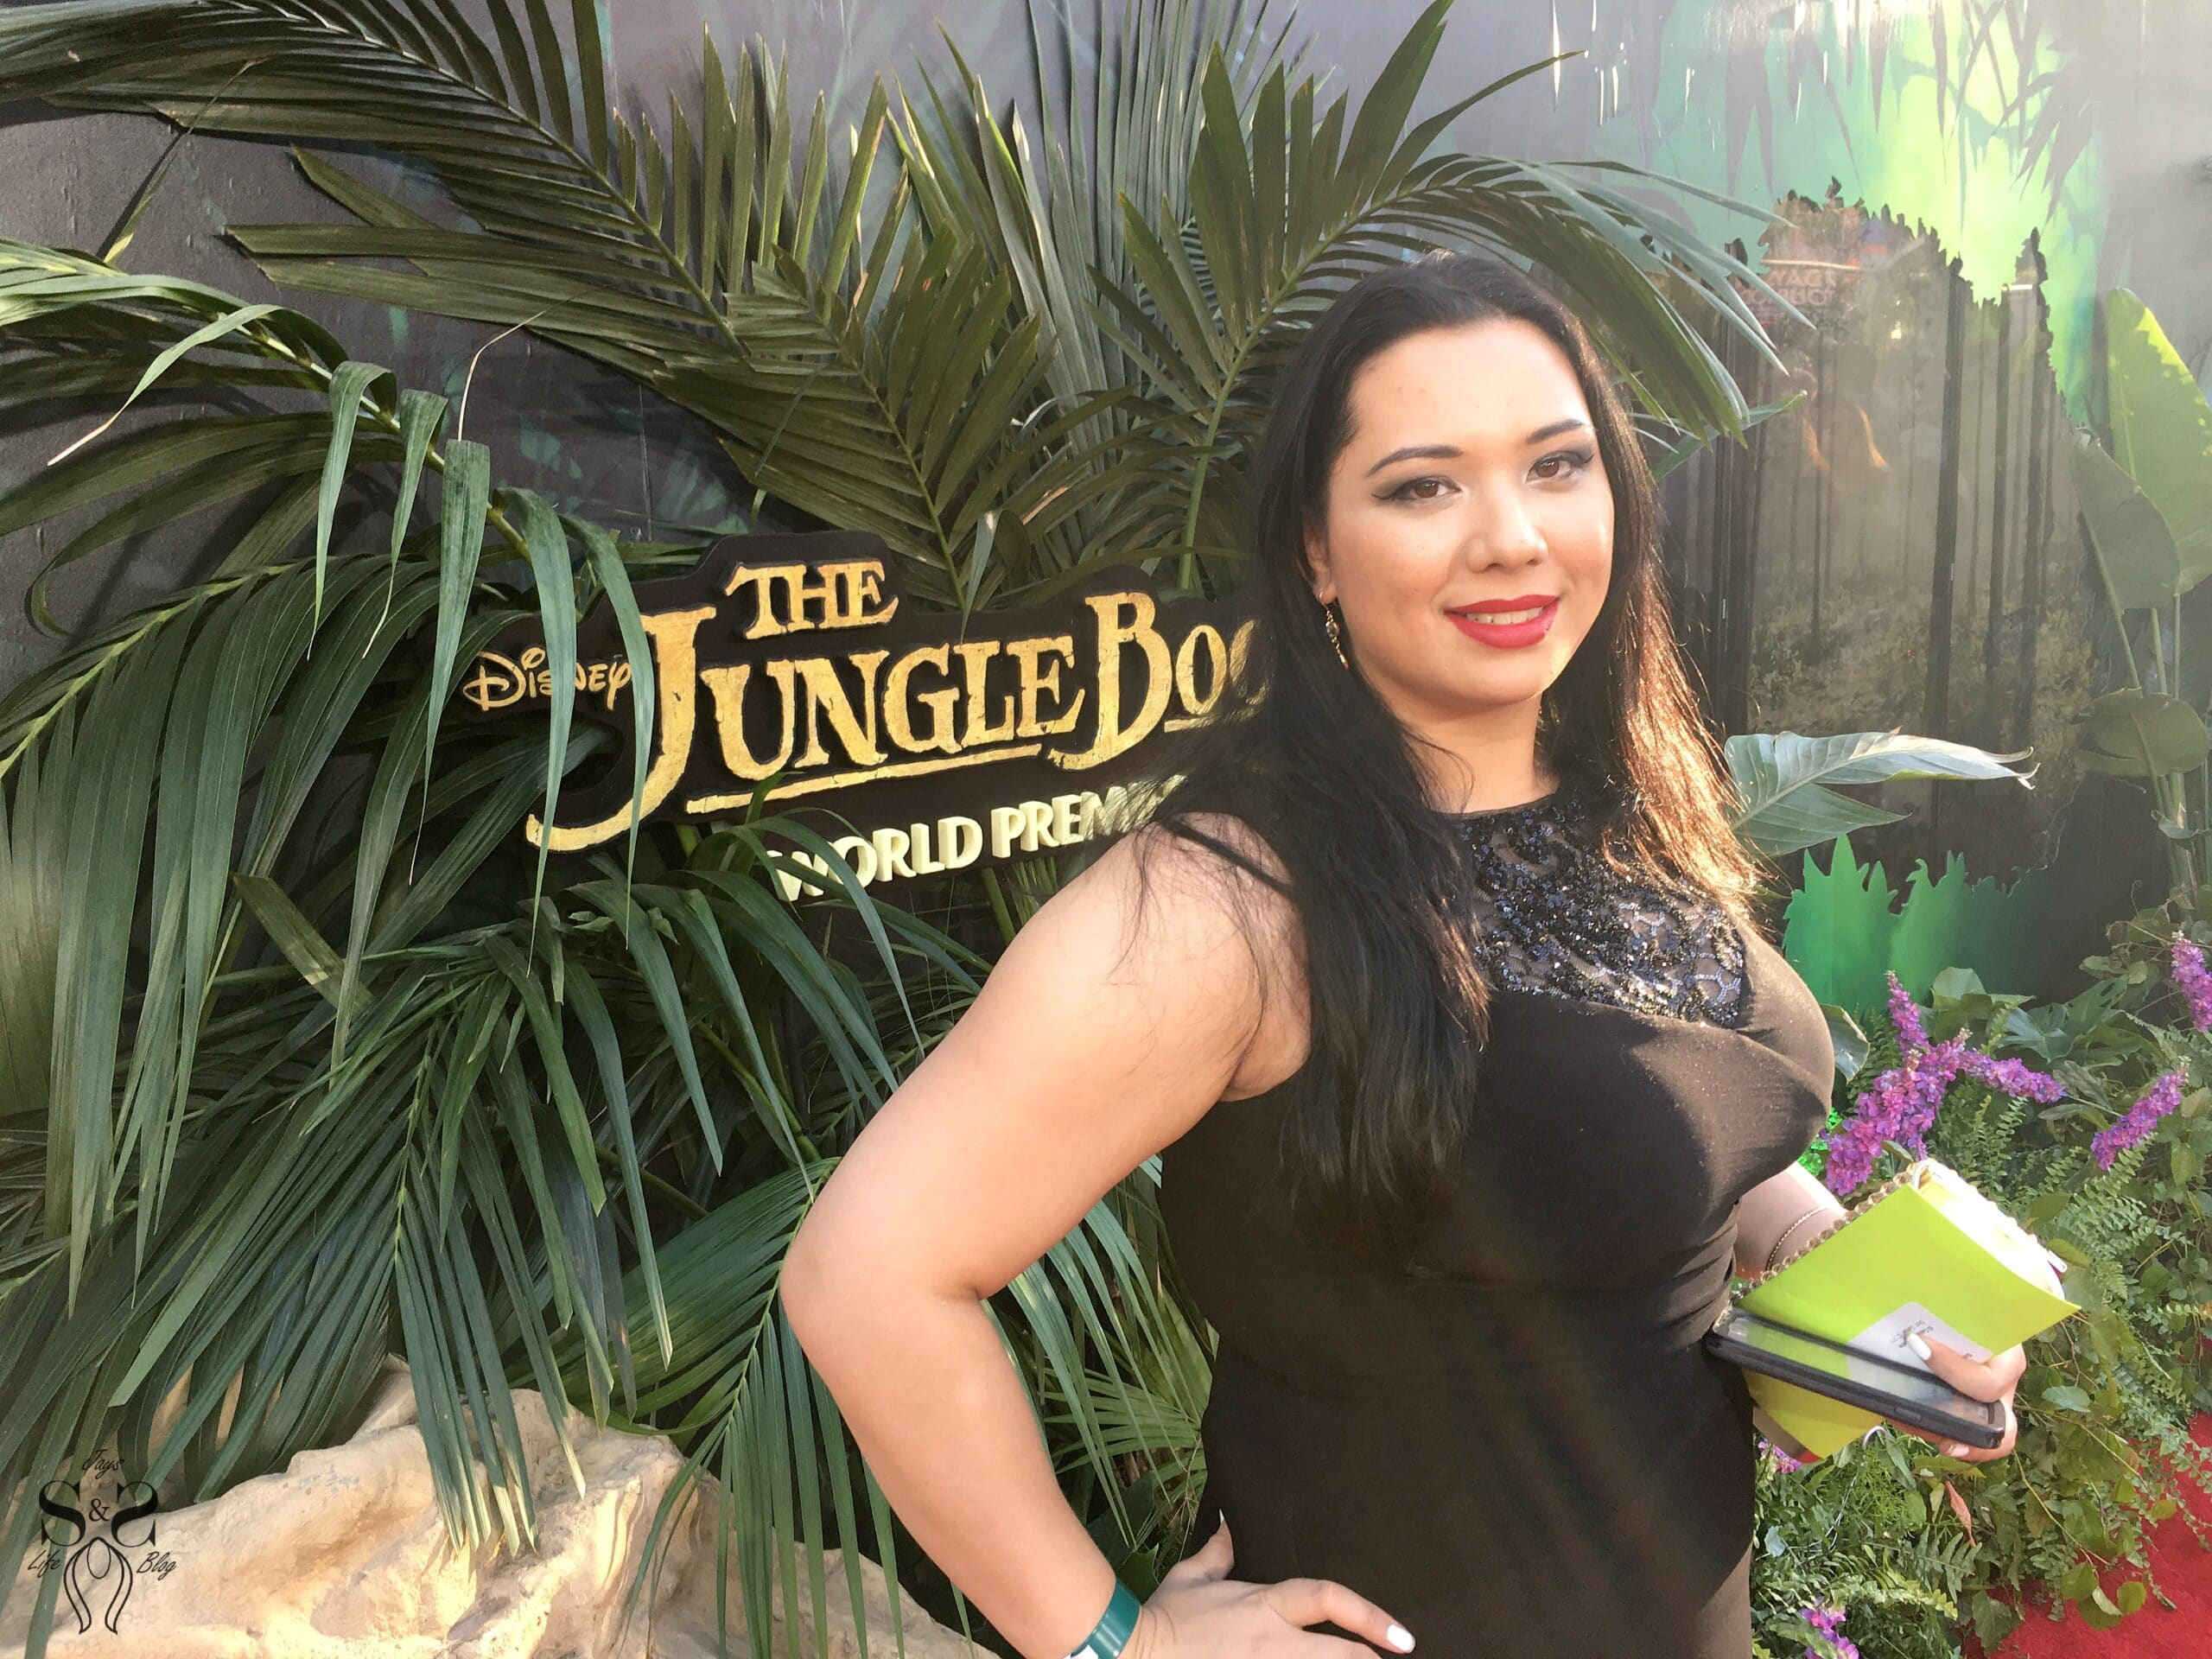 Walking The Red Carpet In LA for Disney's The Jungle Book World Premier